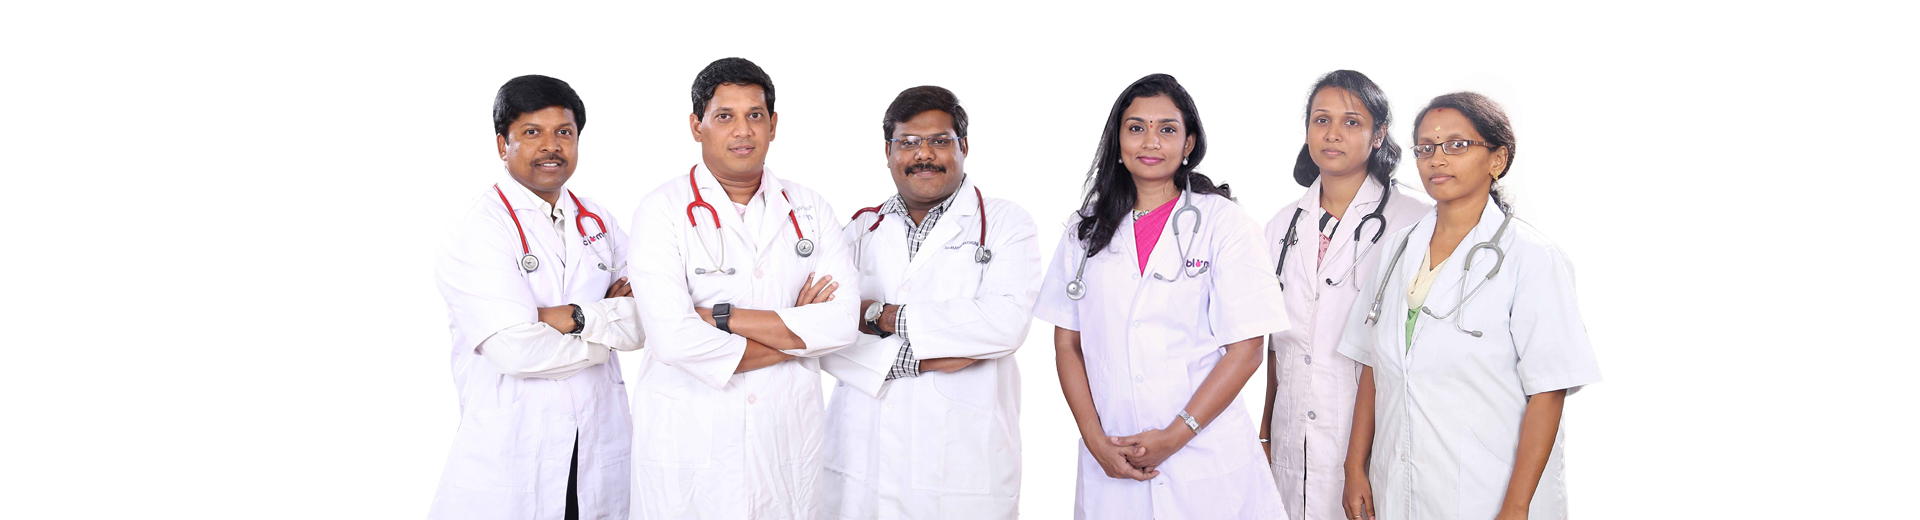 Best Doctors| Surgeons| Physicians| Medical Consultants|Chennai